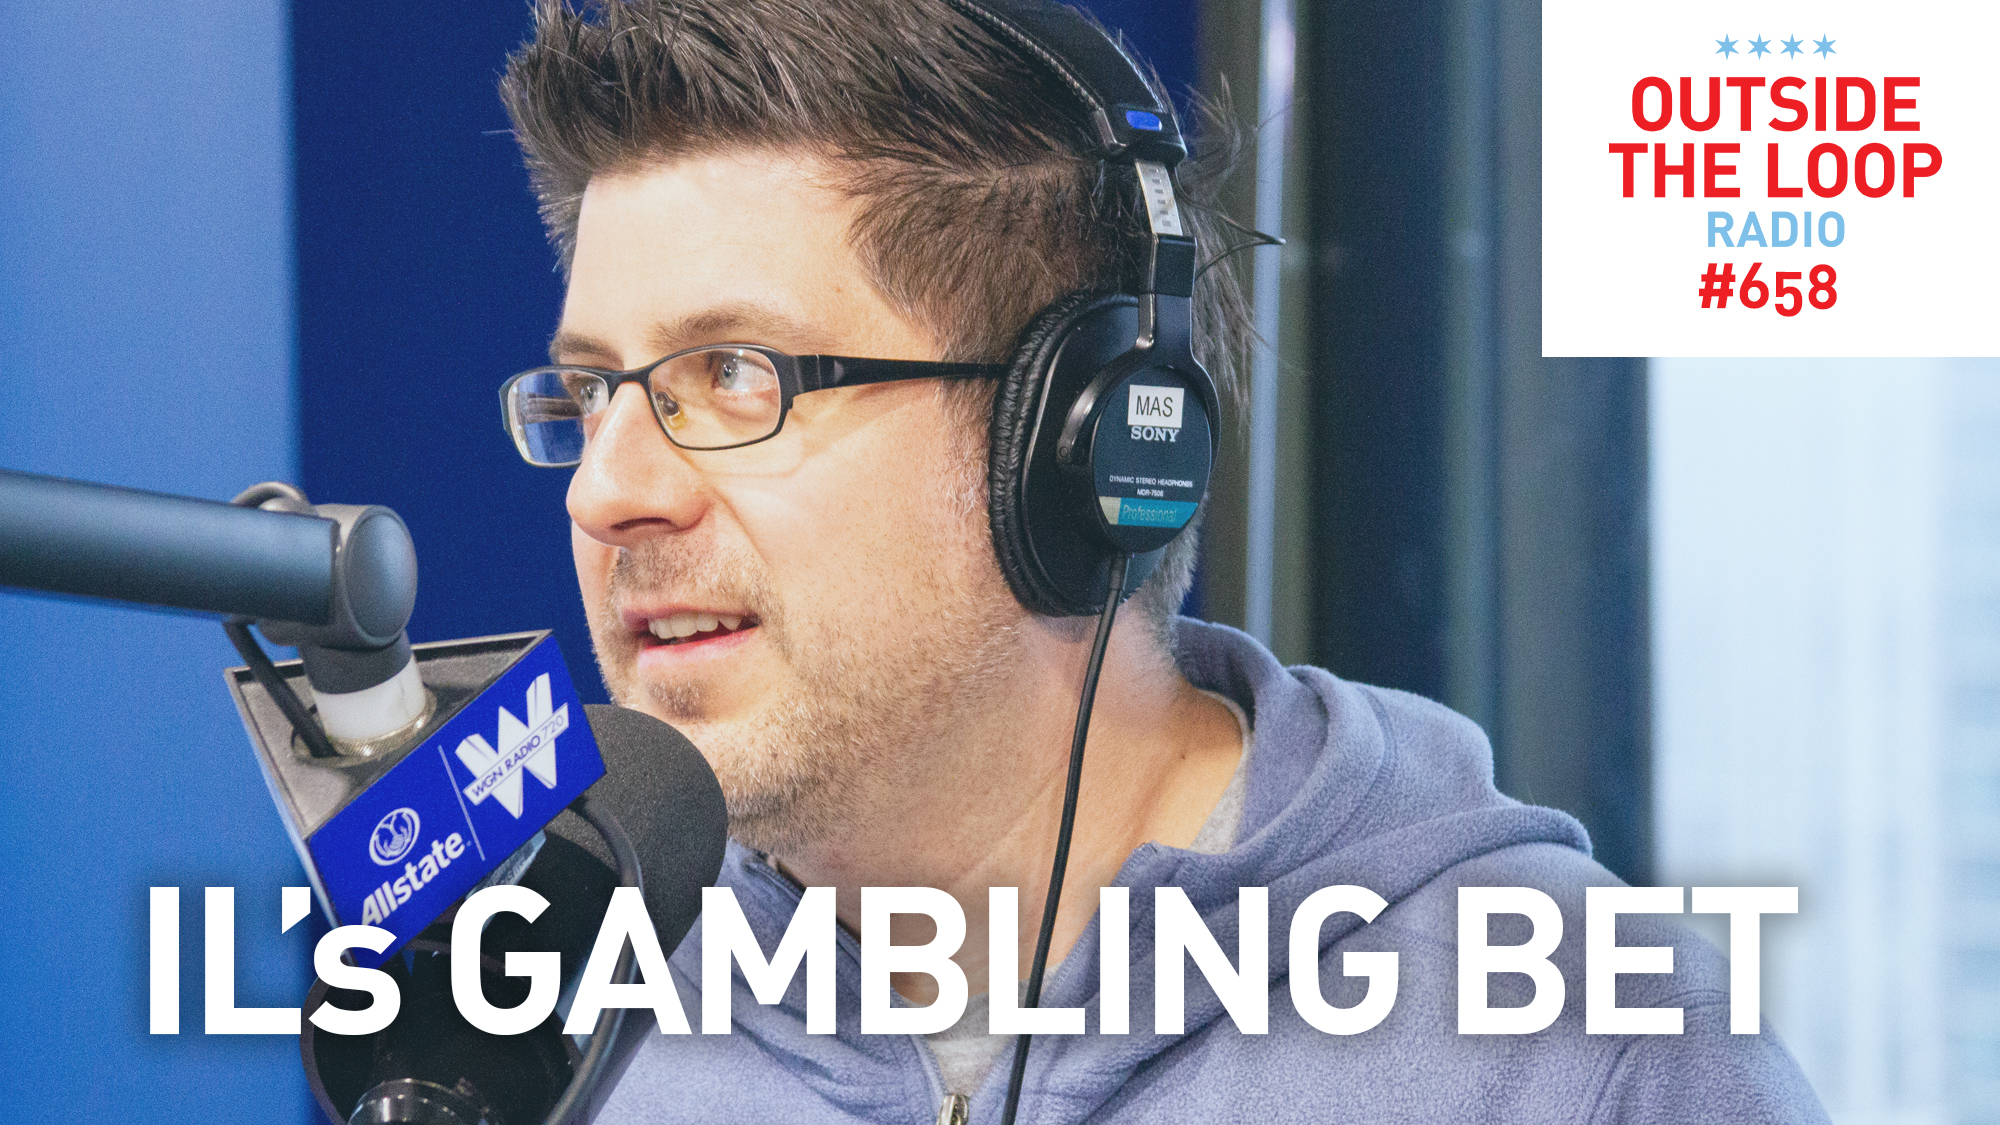 Mike Stephen learns about Illinois' gamble on video gaming.